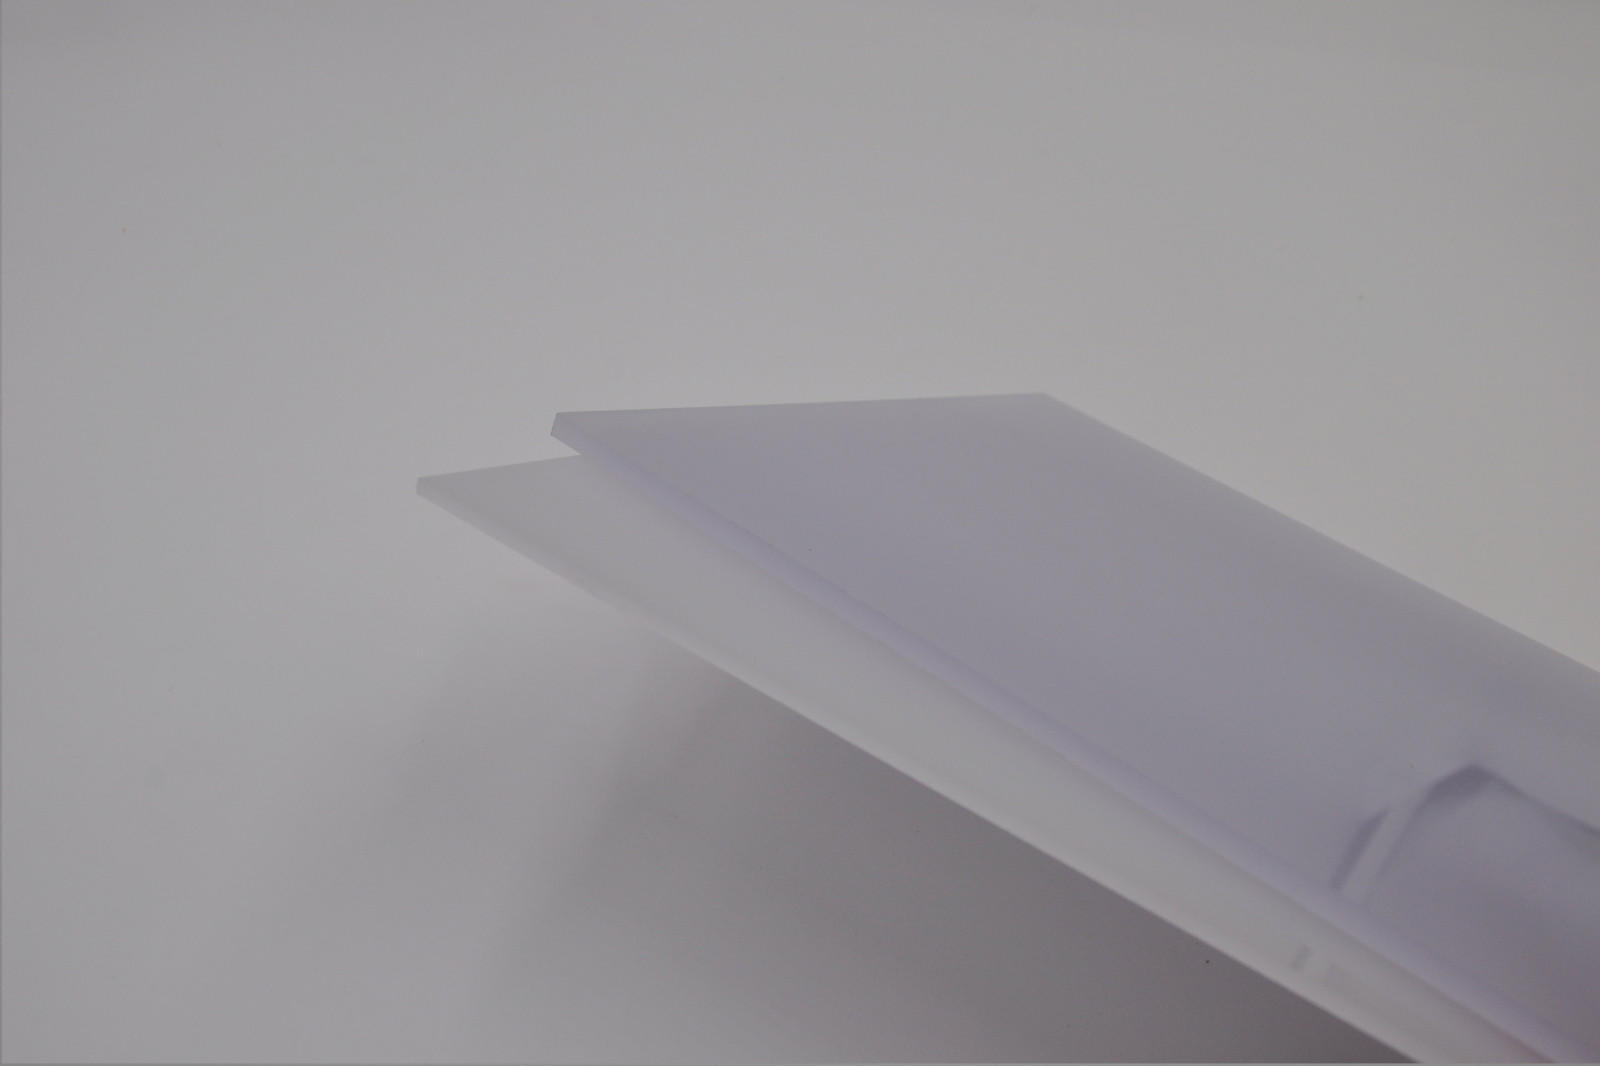 Custom carbonate light diffusion polycarbonate sheet led GWX